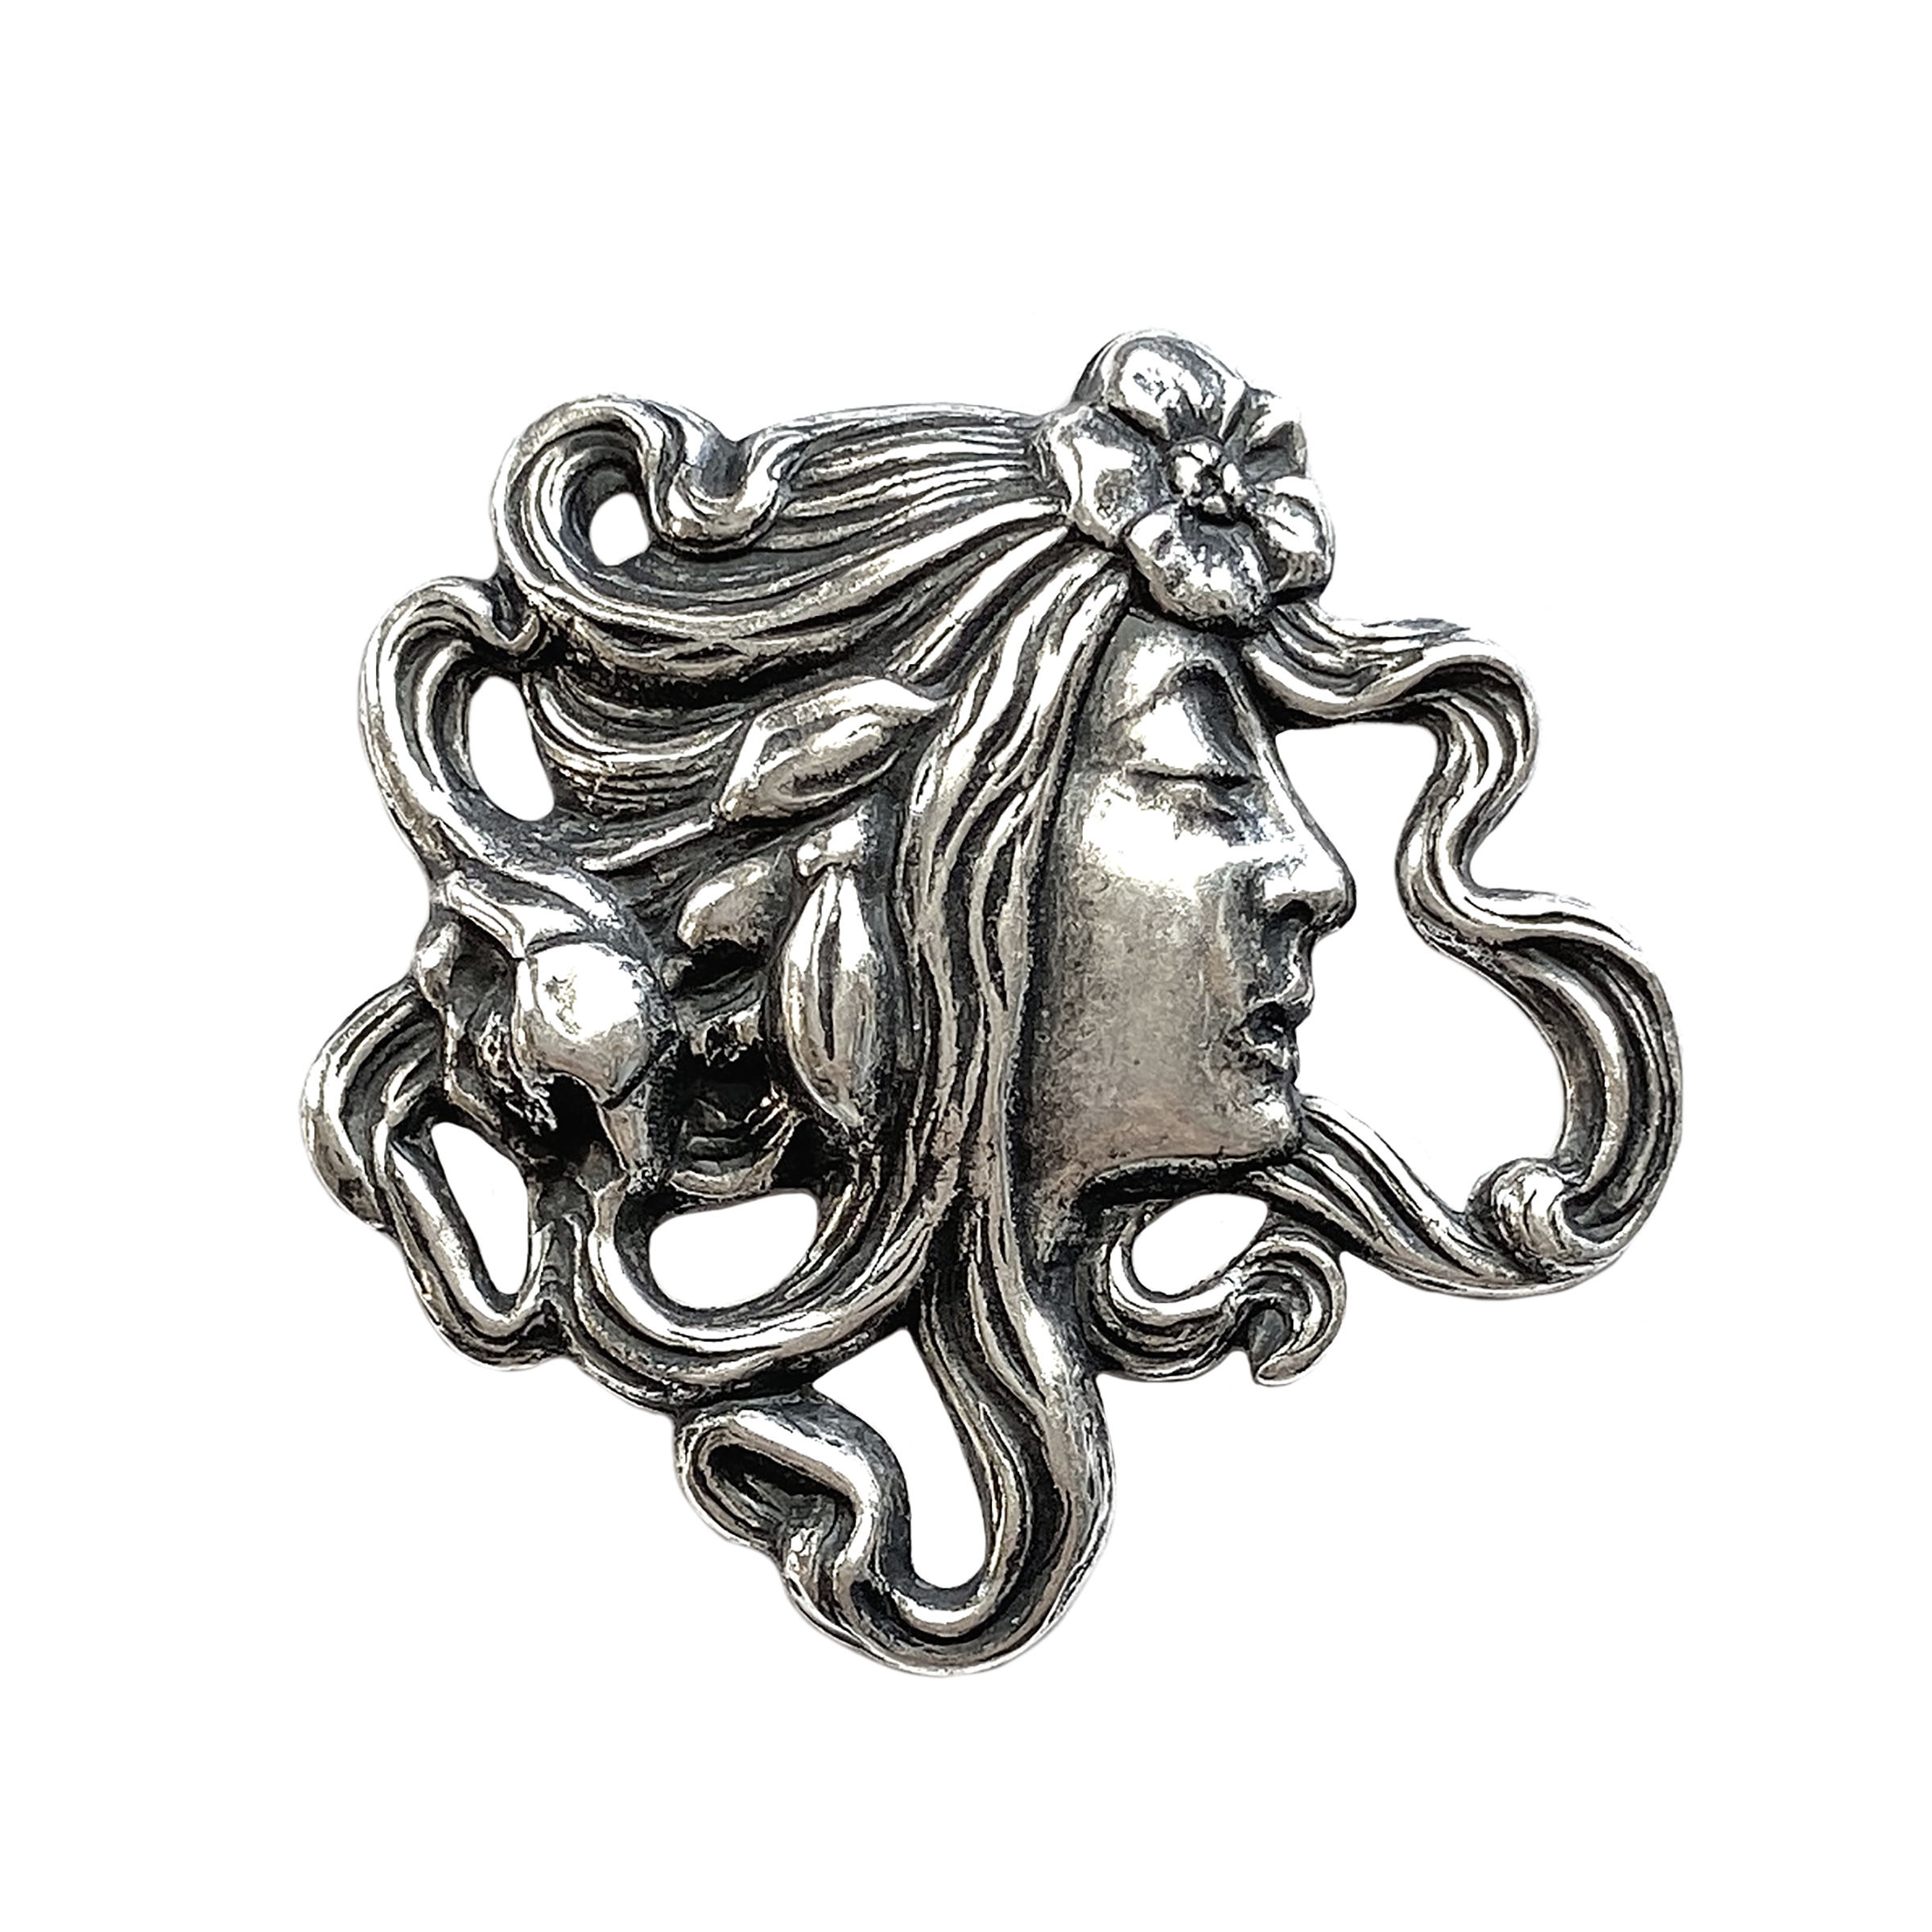 lady in the wind stamping, silverware silverplate, bohemian style, lady stamping, lady face, brass stamping, boho style, jewelry making, jewelry supplies, vintage supplies, B'sue Boutiques, antique silver, 36x36mm, US-made, nickel-free, 01310